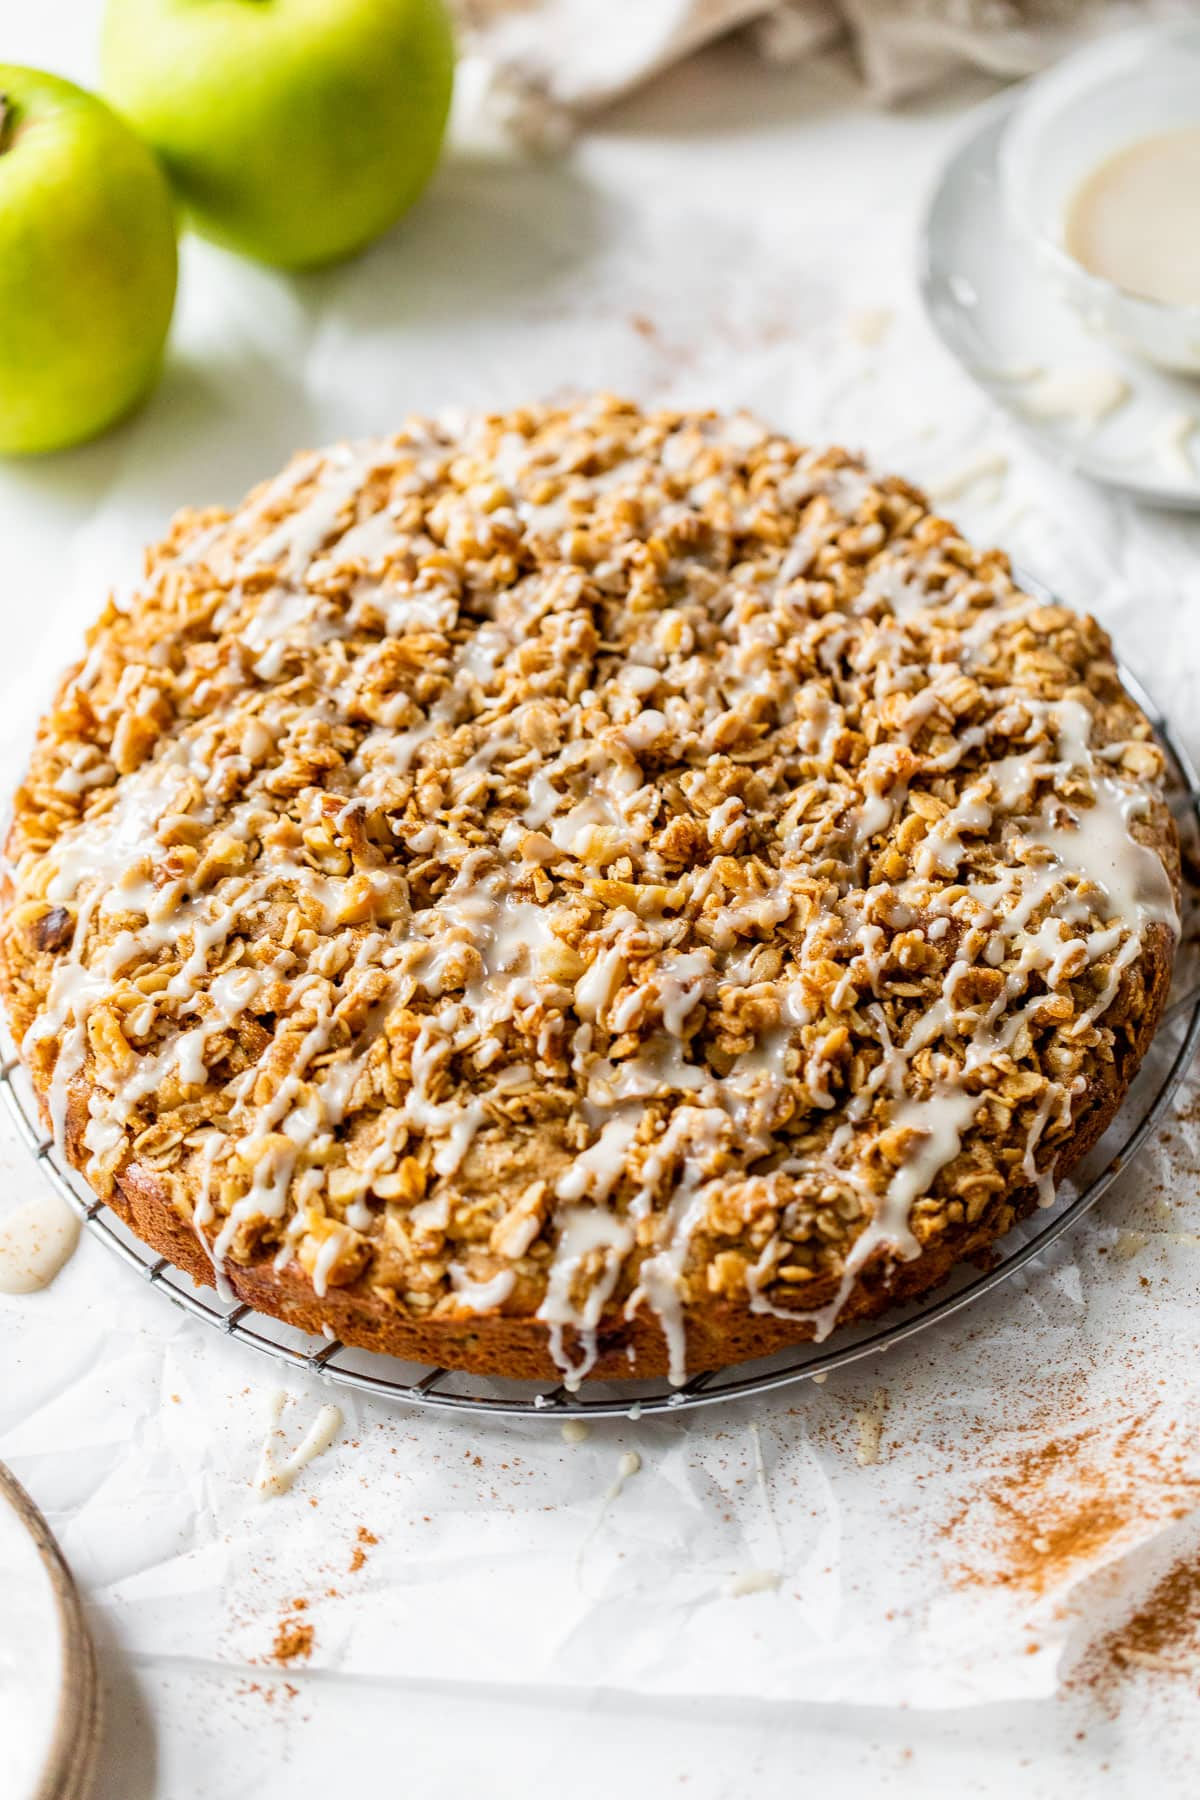 Apple Coffee Cake with Cinnamon Streusel Topping on a cake plate topped with glaze